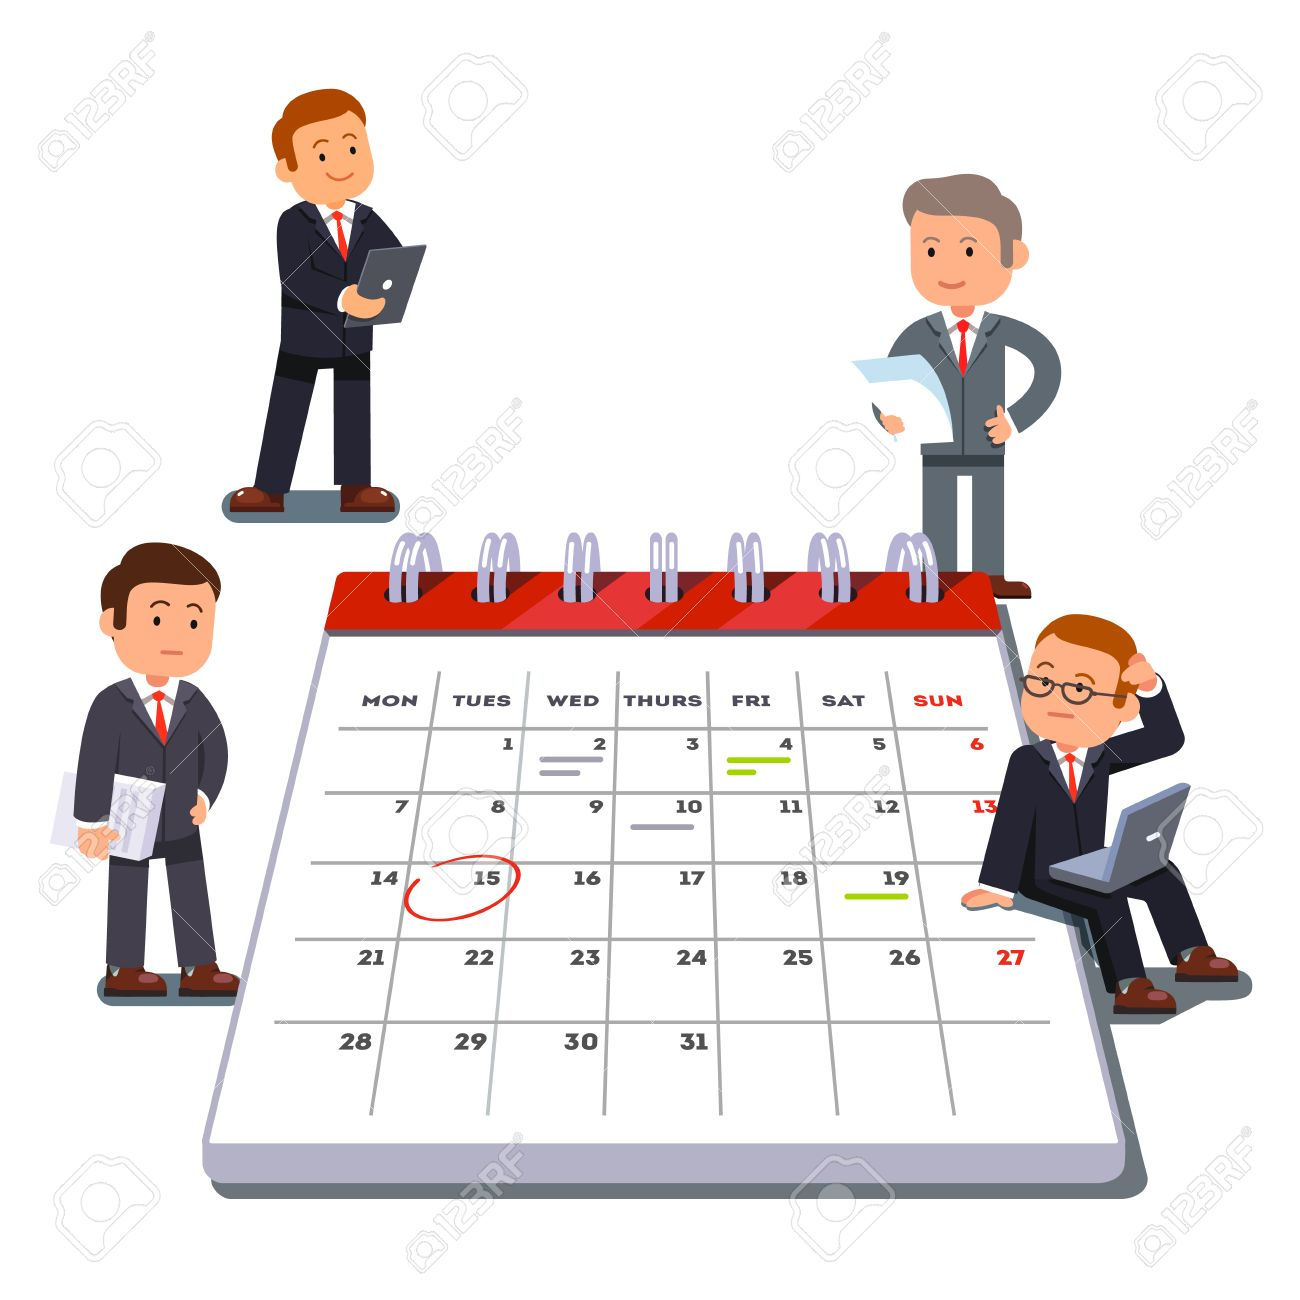 Company business team planning and scheduling operations agenda on a big spring calendar. Flat style vector illustration isolated on white background. - 67658261